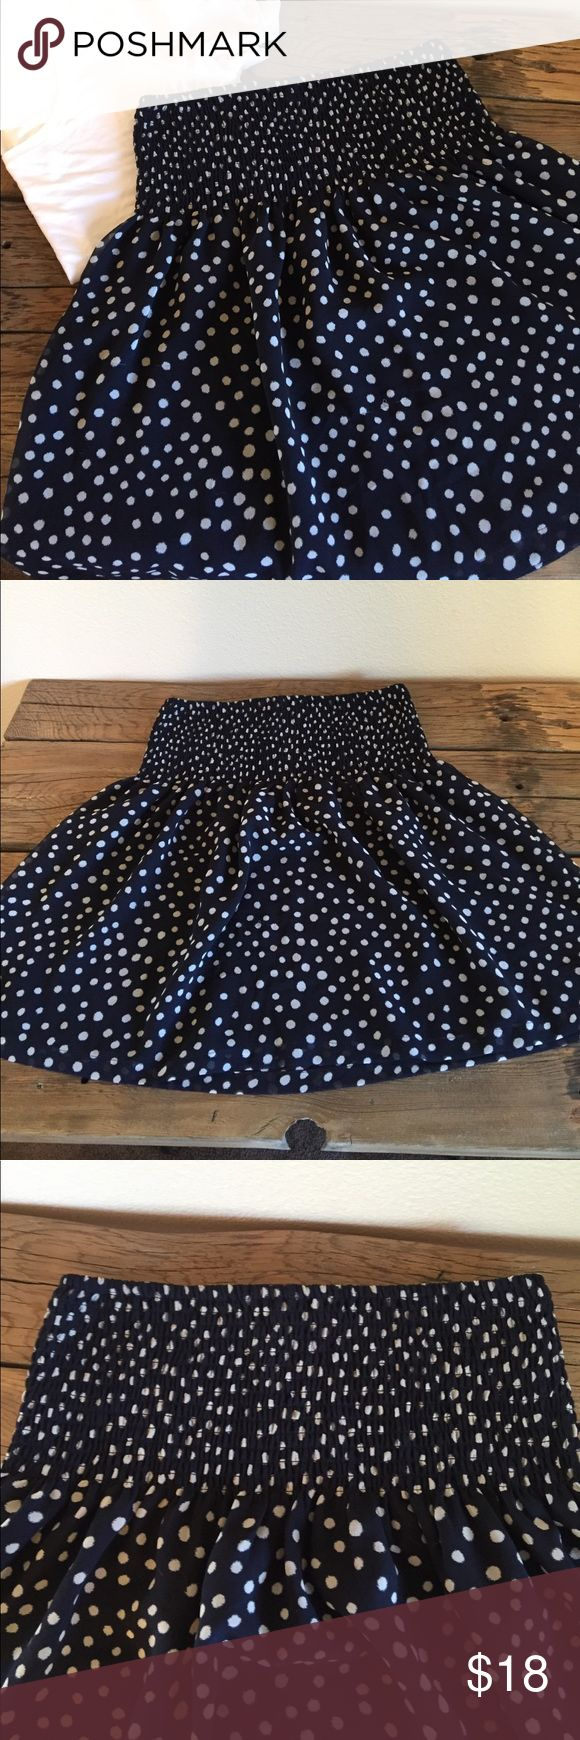 """Polka Dot Smocked Waist Loft Skirt This fun skirt is perfect for hot temperatures! With the wide smocked waistband, you can wear it lower for a day at the office, or pulled up higher with a top tucked in! Looks cute in pattern mixed outfits, with heels or strappy sandals, with a white tee or chambray button up, the list goes on. Size 8, fits TTS. 14.5"""" waistband flat,   18"""" long. LOFT Skirts"""